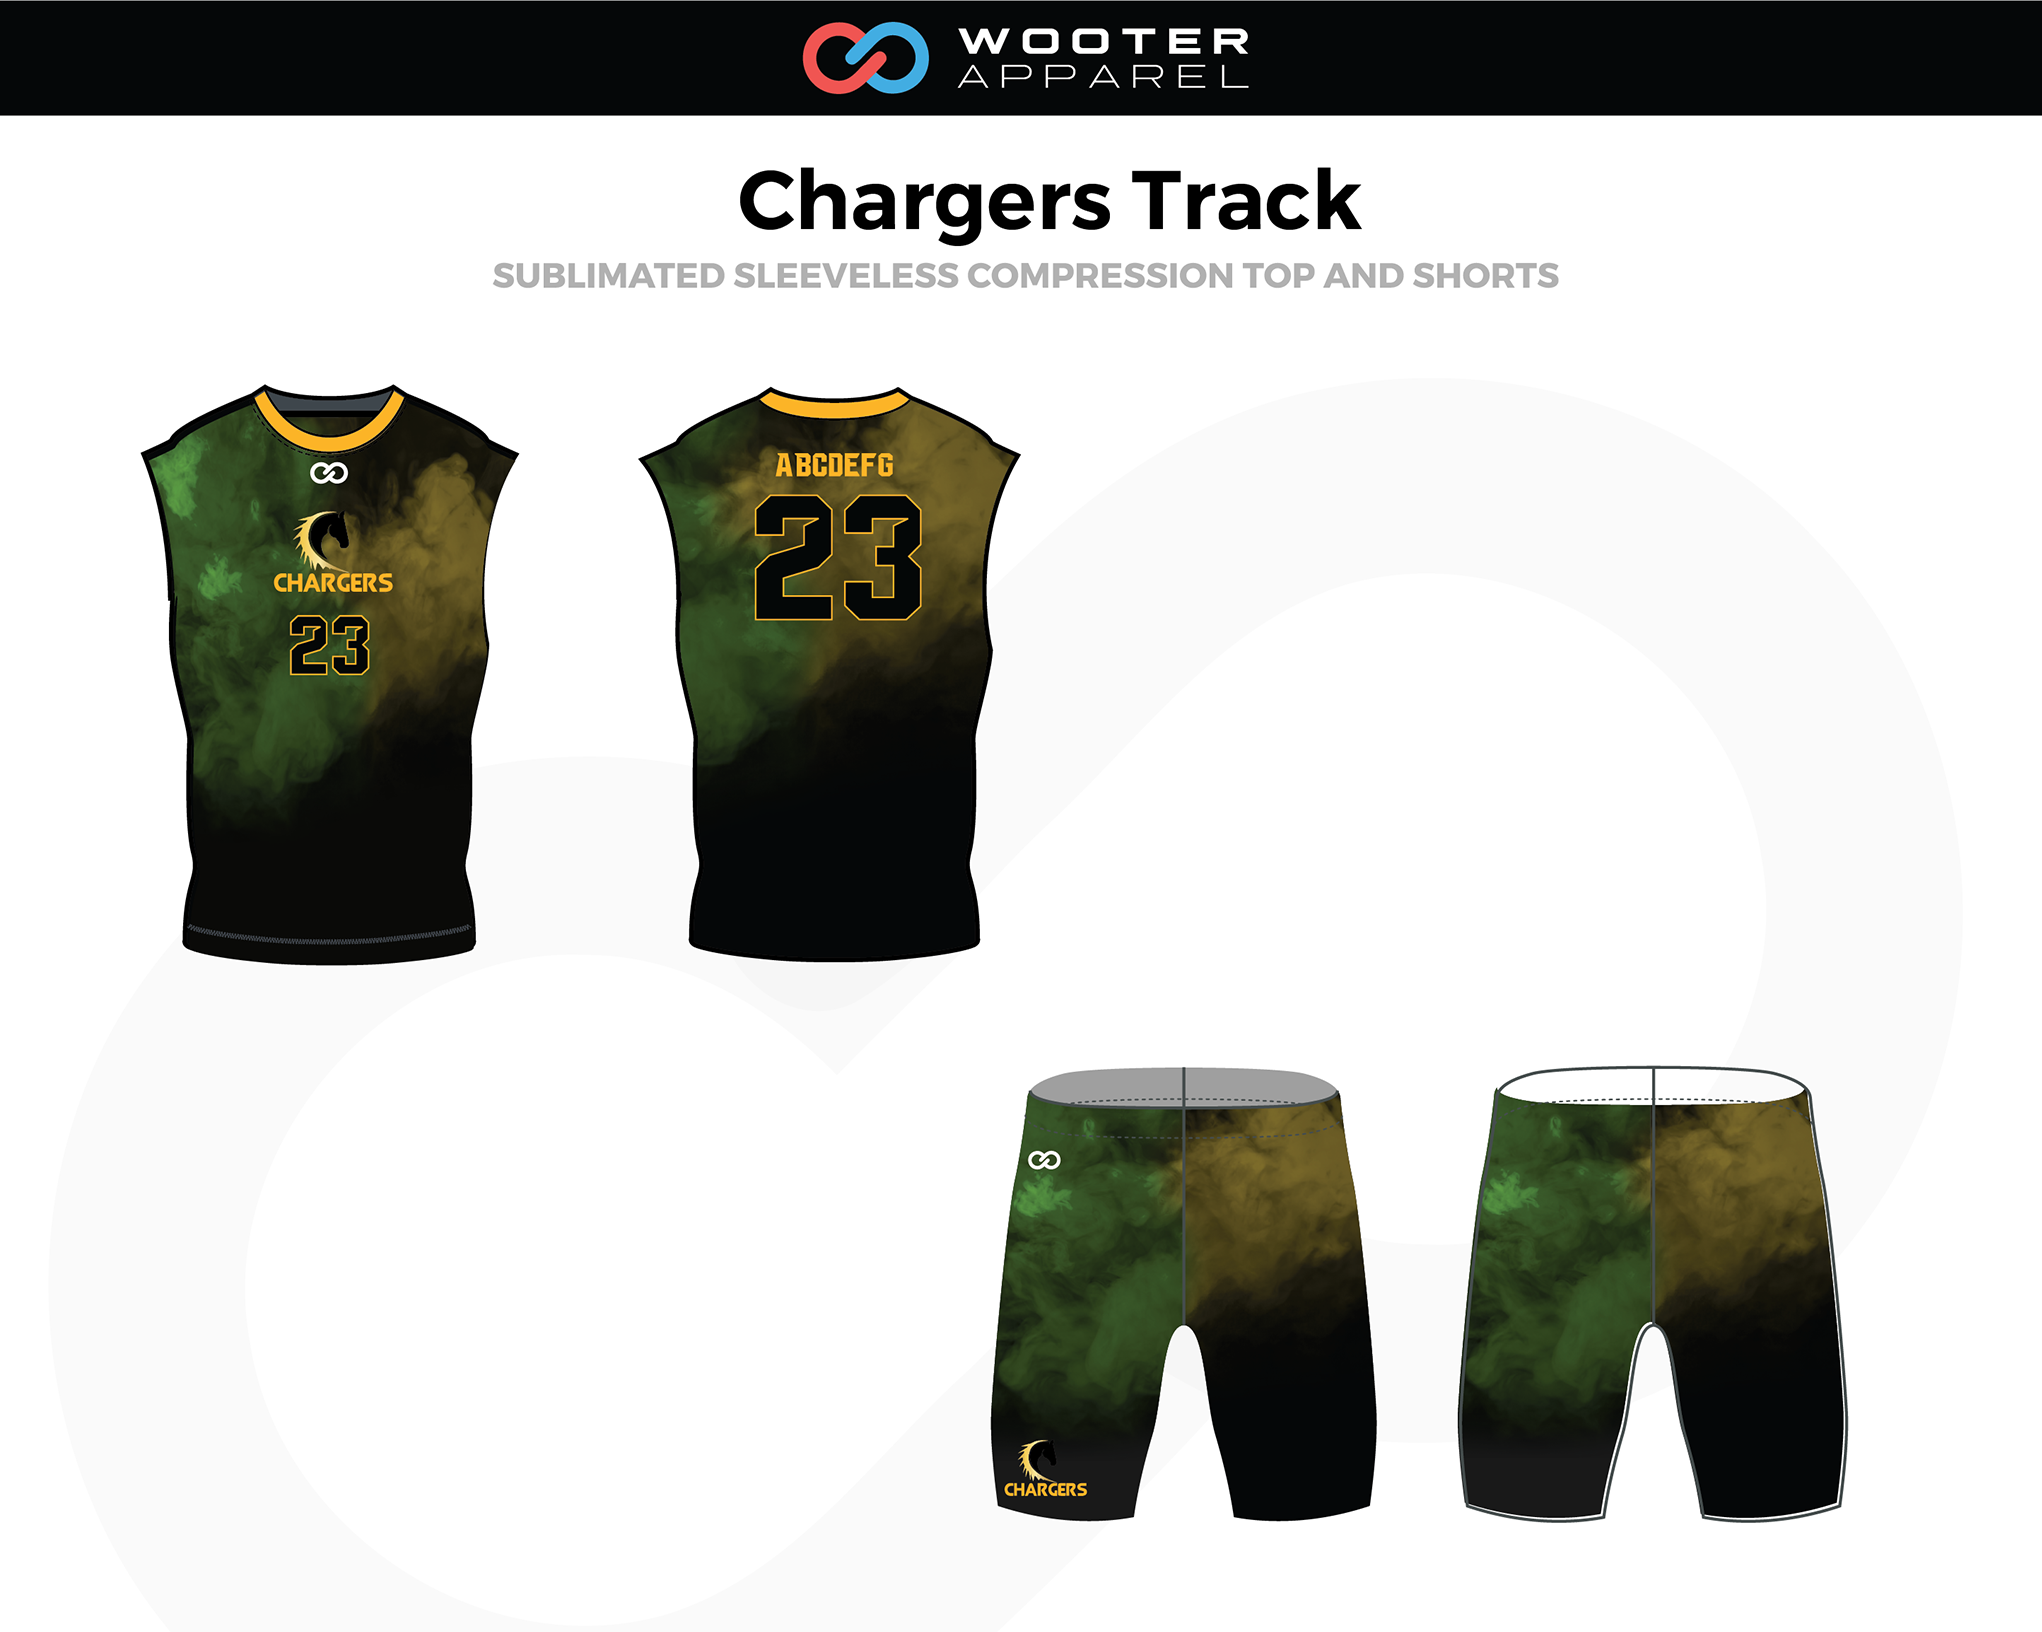 CHARGERS Camouflage Yellow Black Sleeveless Compression Track Uniforms, Jerseys, and Shorts